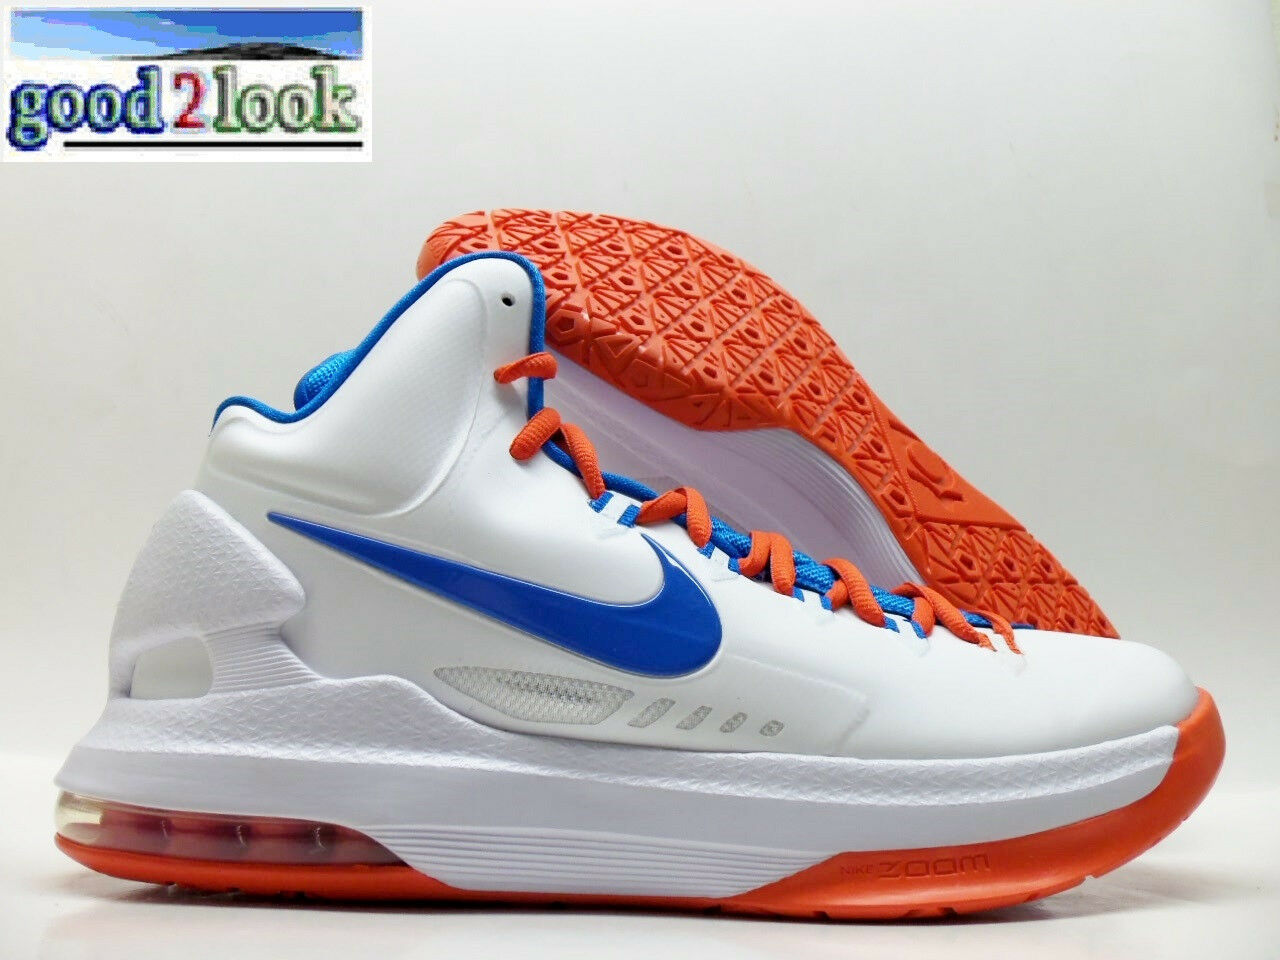 NIKE ZOOM KD V KEVIN DURANT WHITE/PHOTO BLUE-ORANGE SIZE MEN'S 10 Price reduction Seasonal clearance sale